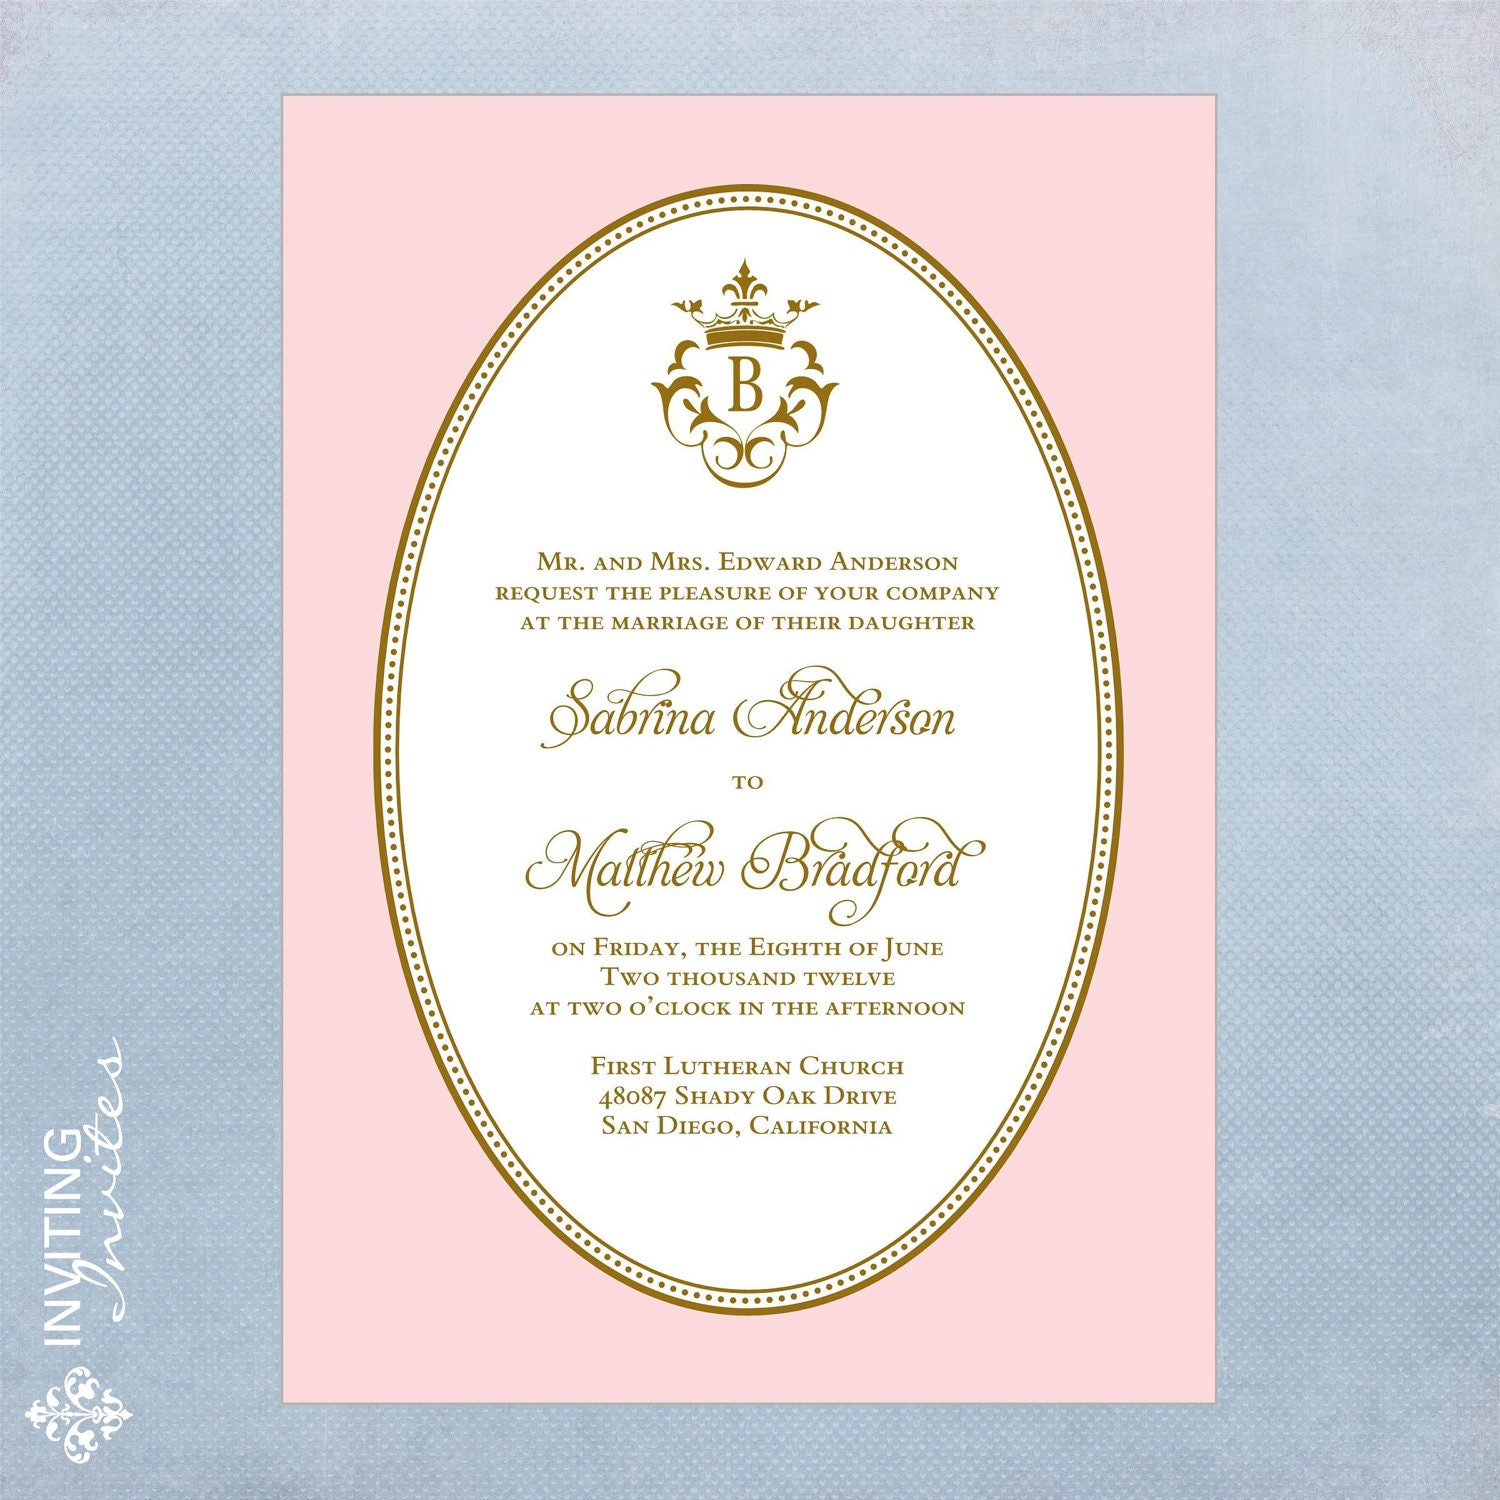 Wedding Invitation Royal Monogram Printable Digital